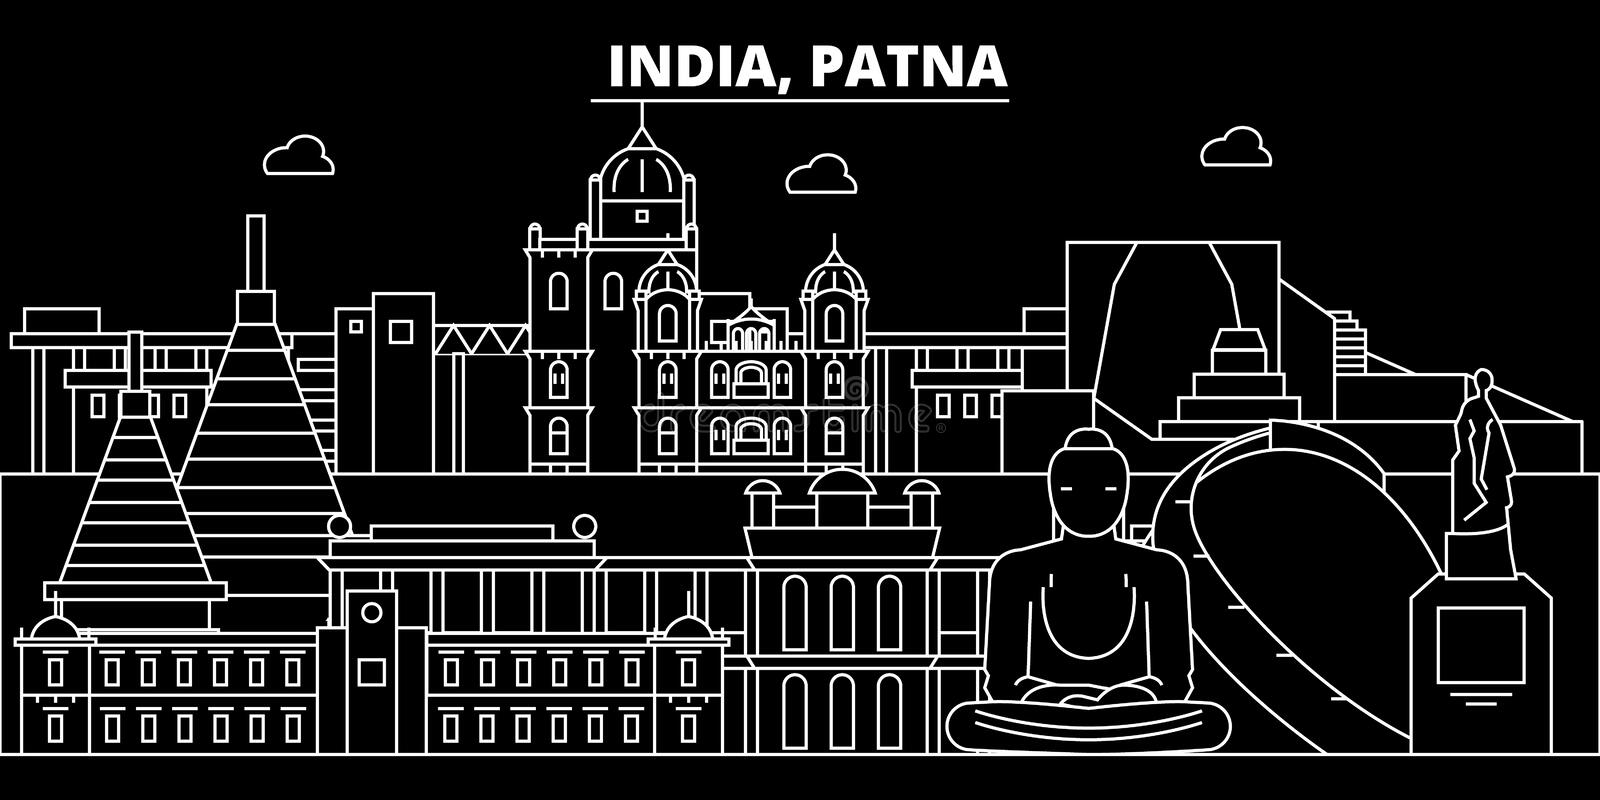 Patna silhouette skyline. India - Patna vector city, indian linear architecture, buildings. Patna travel illustration. Patna silhouette skyline. India - Patna vector illustration